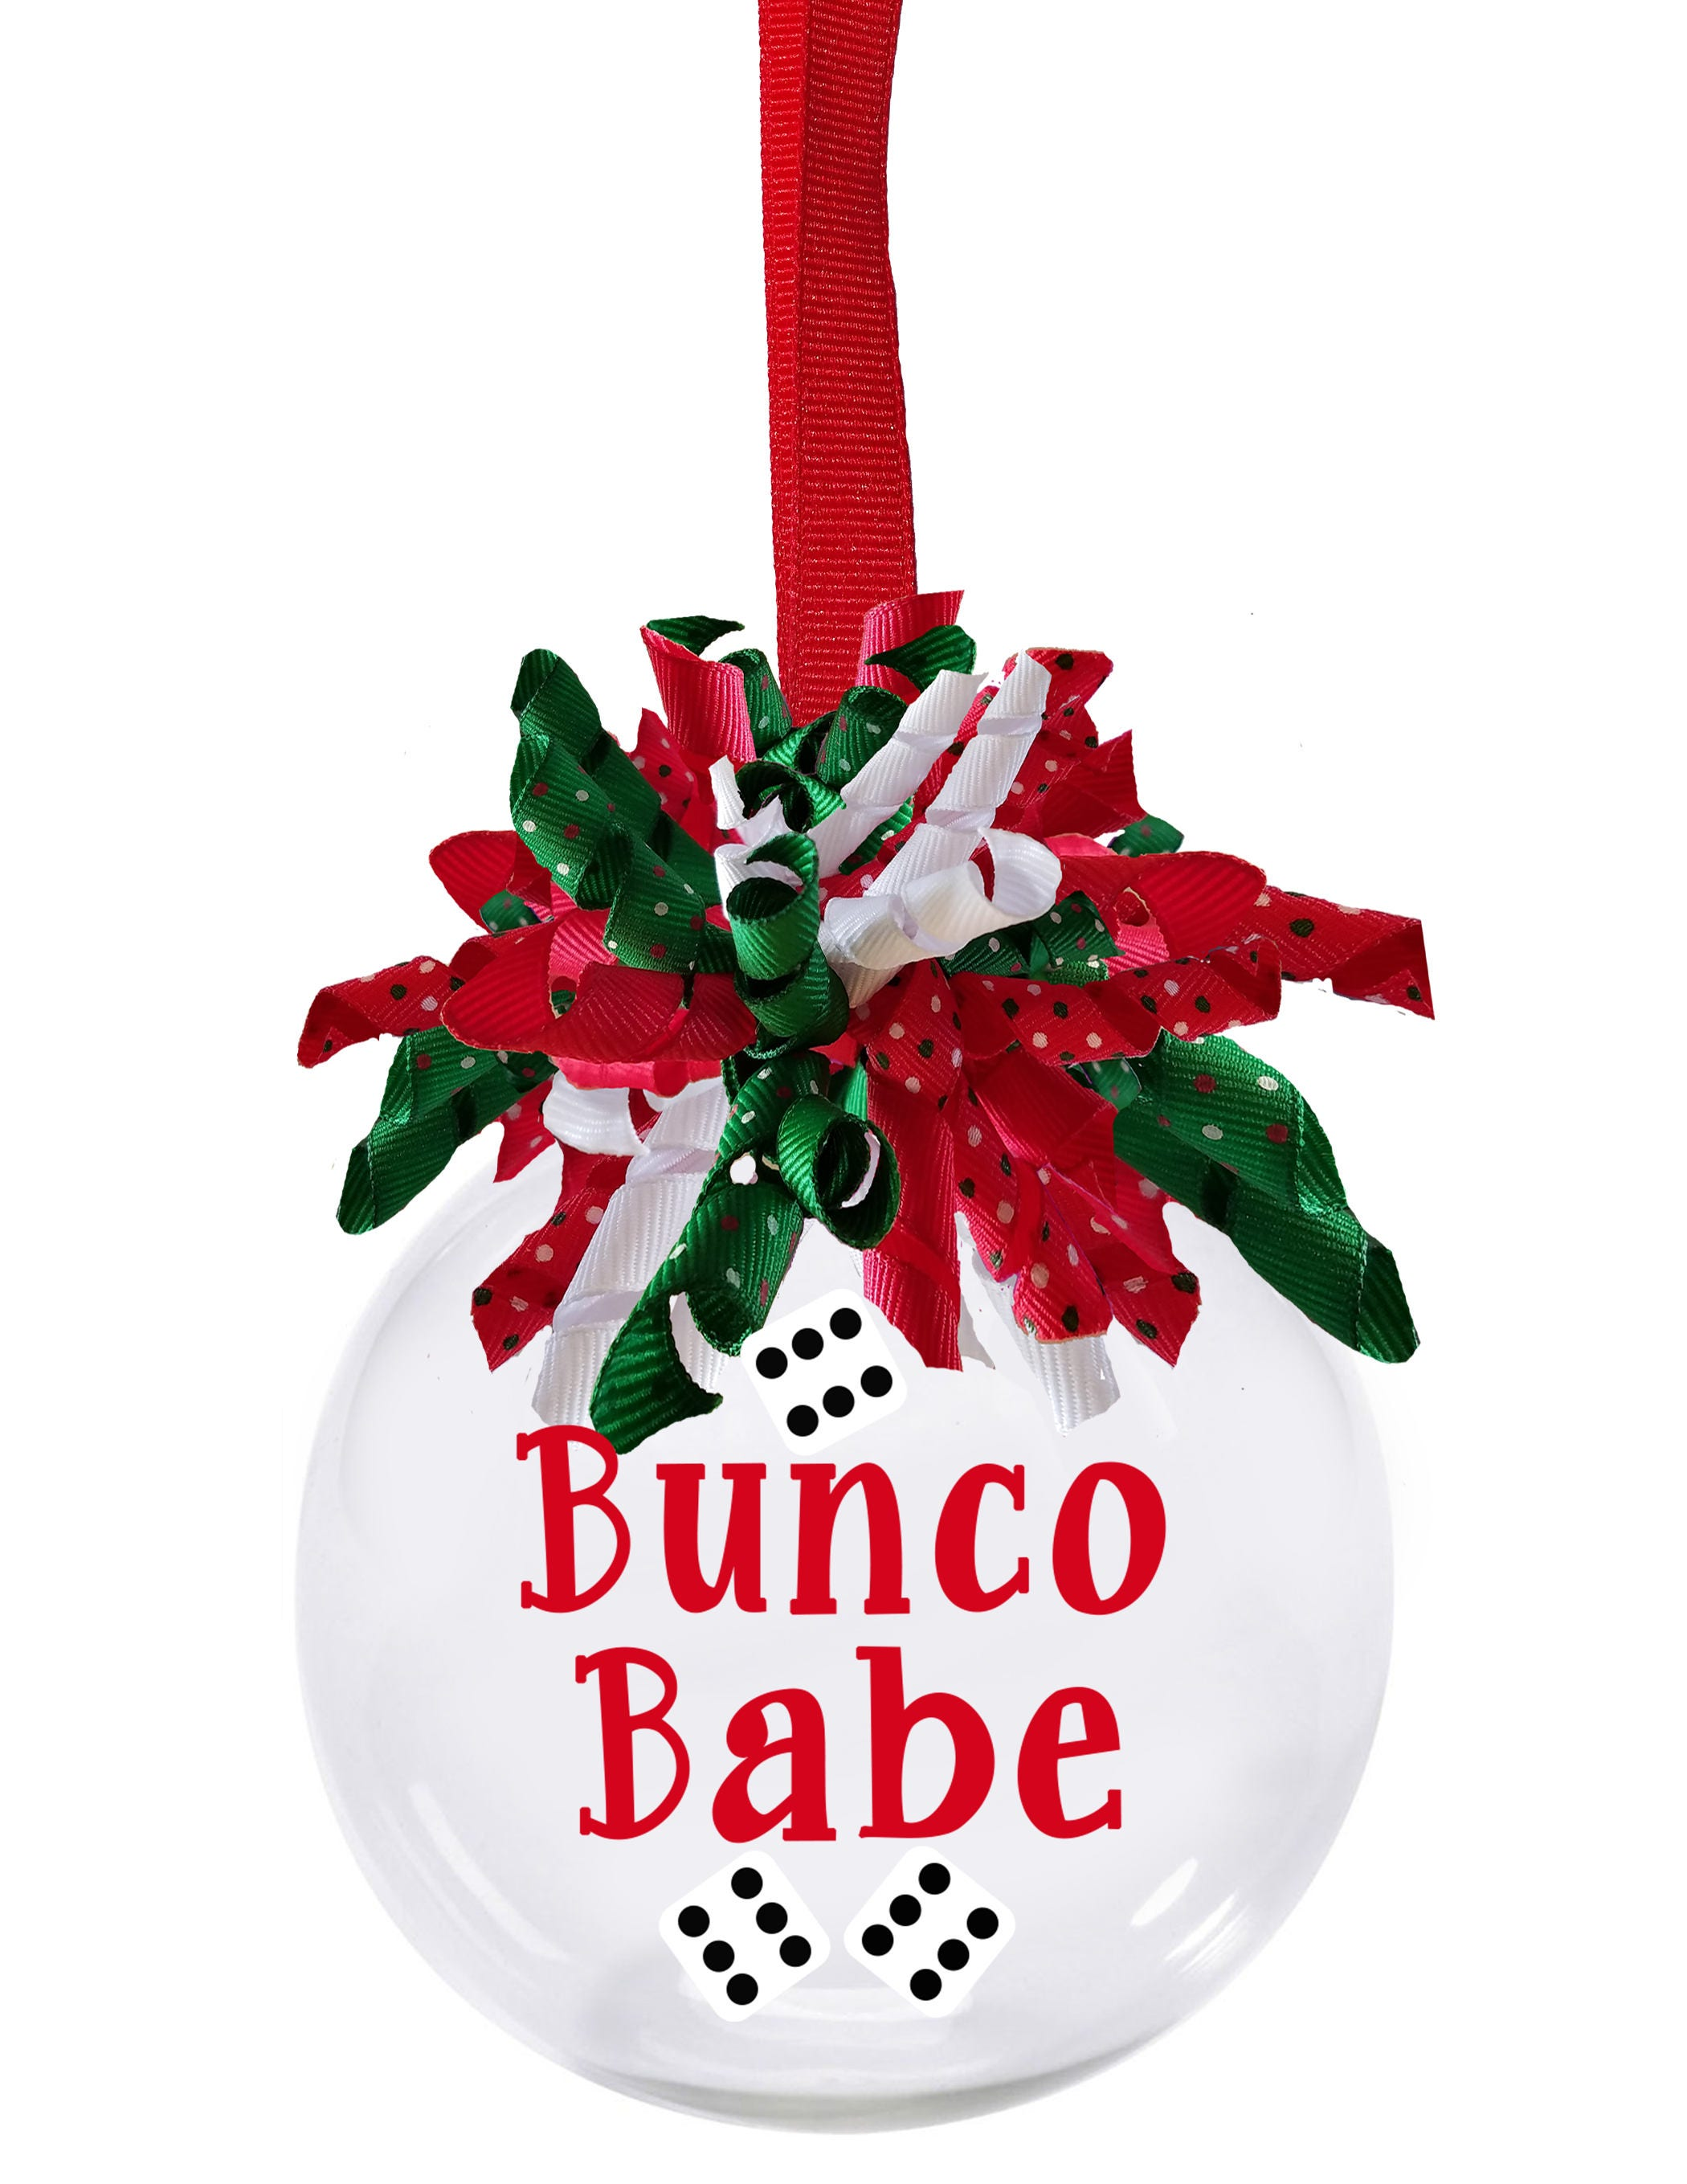 Bunco Babe Christmas ornament with Christmas korker ribbon | Etsy